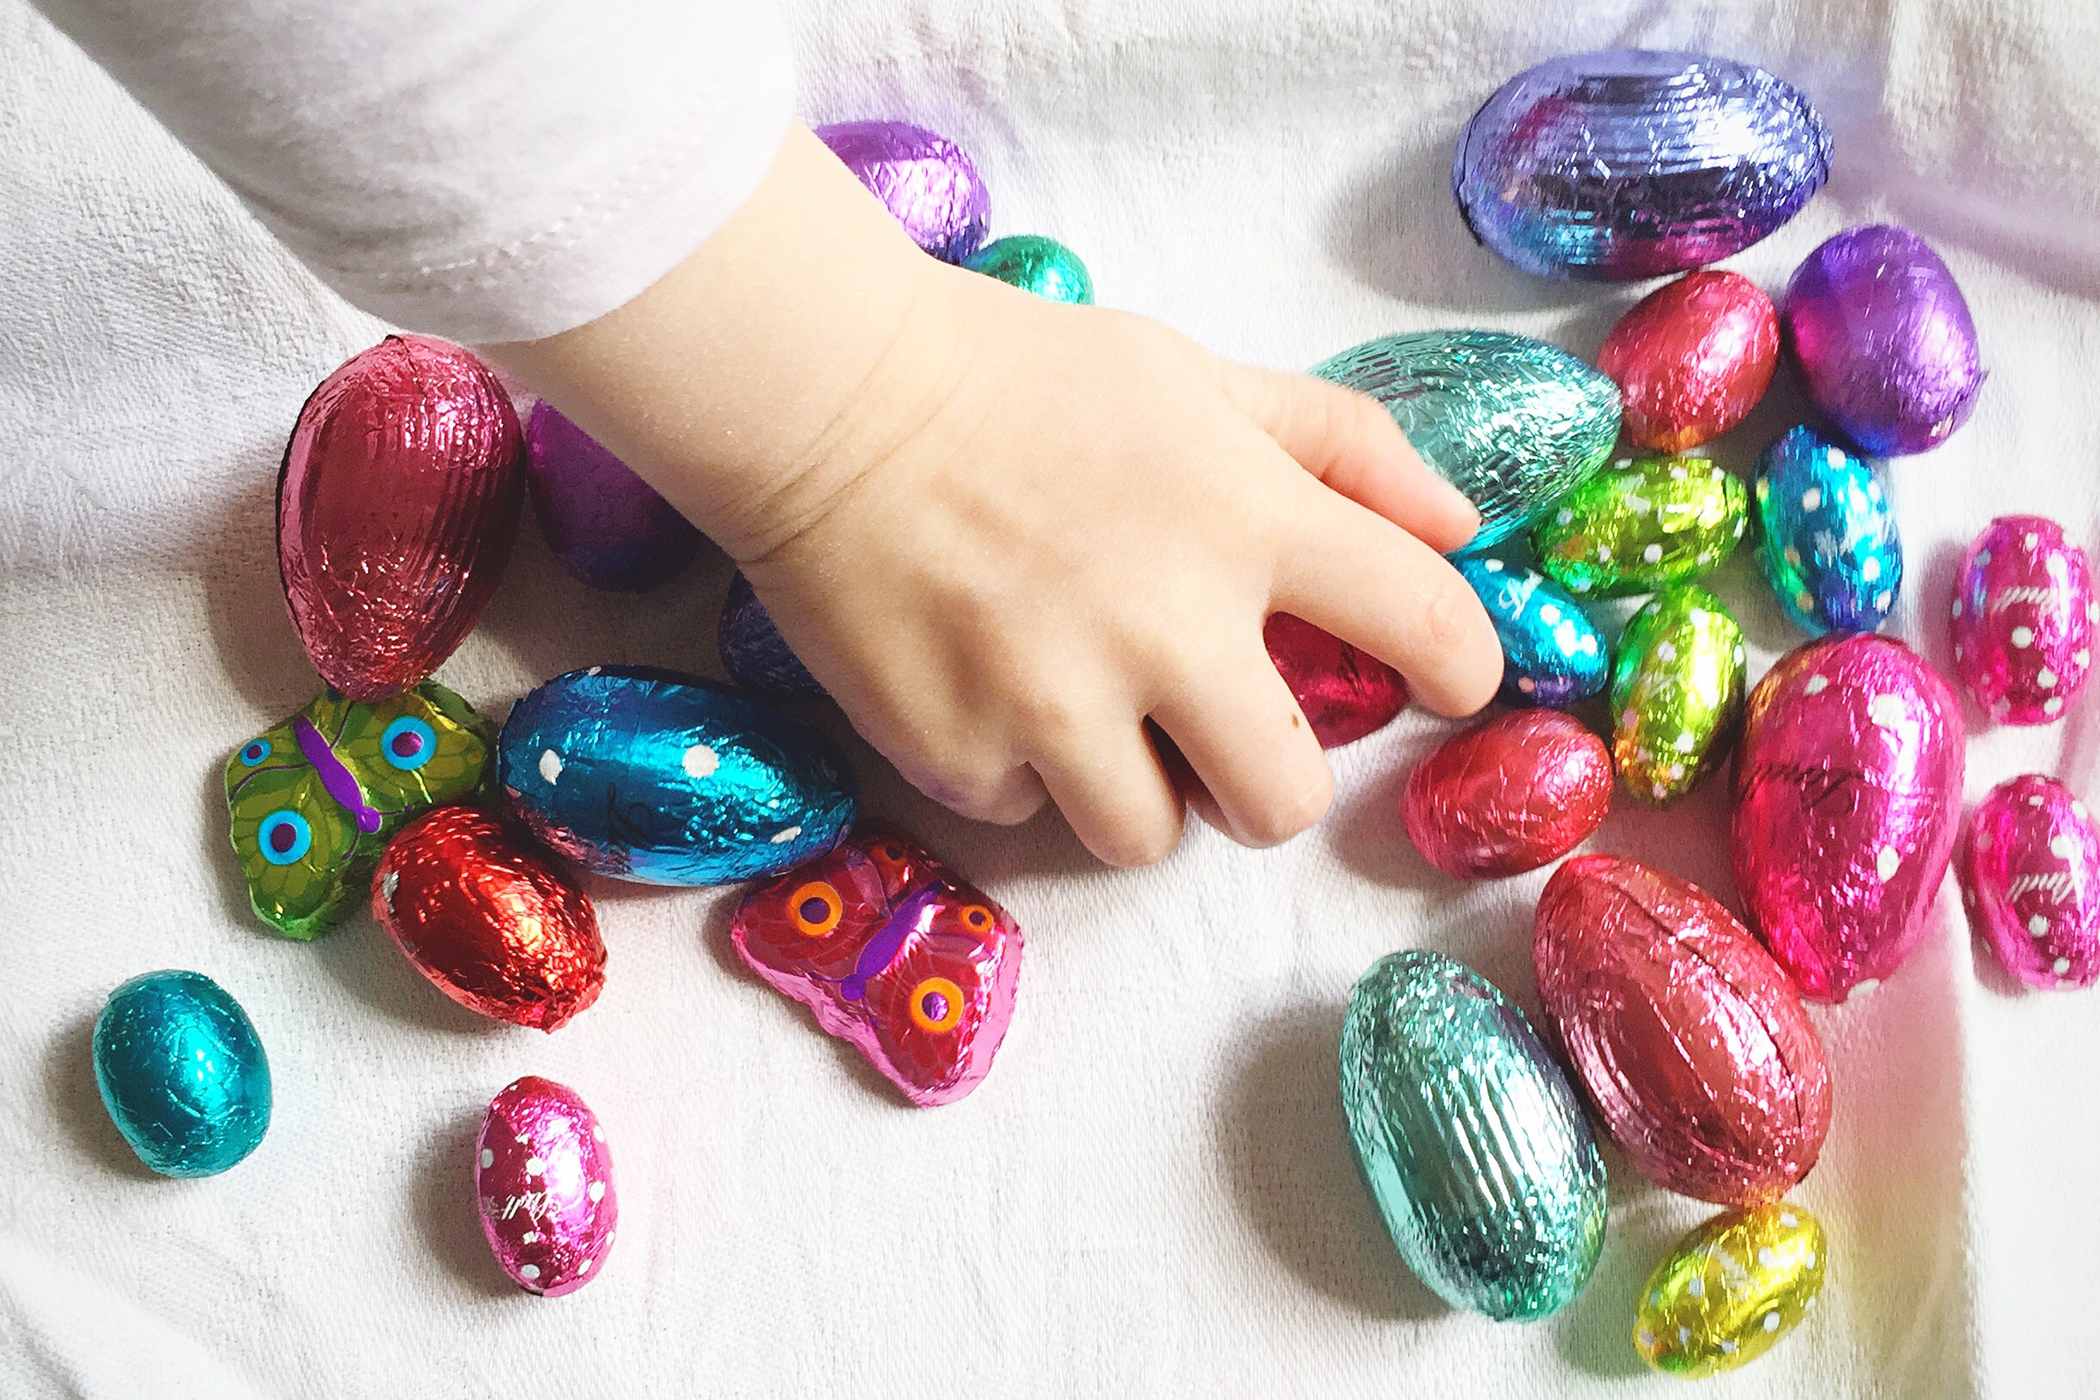 eating easter candy